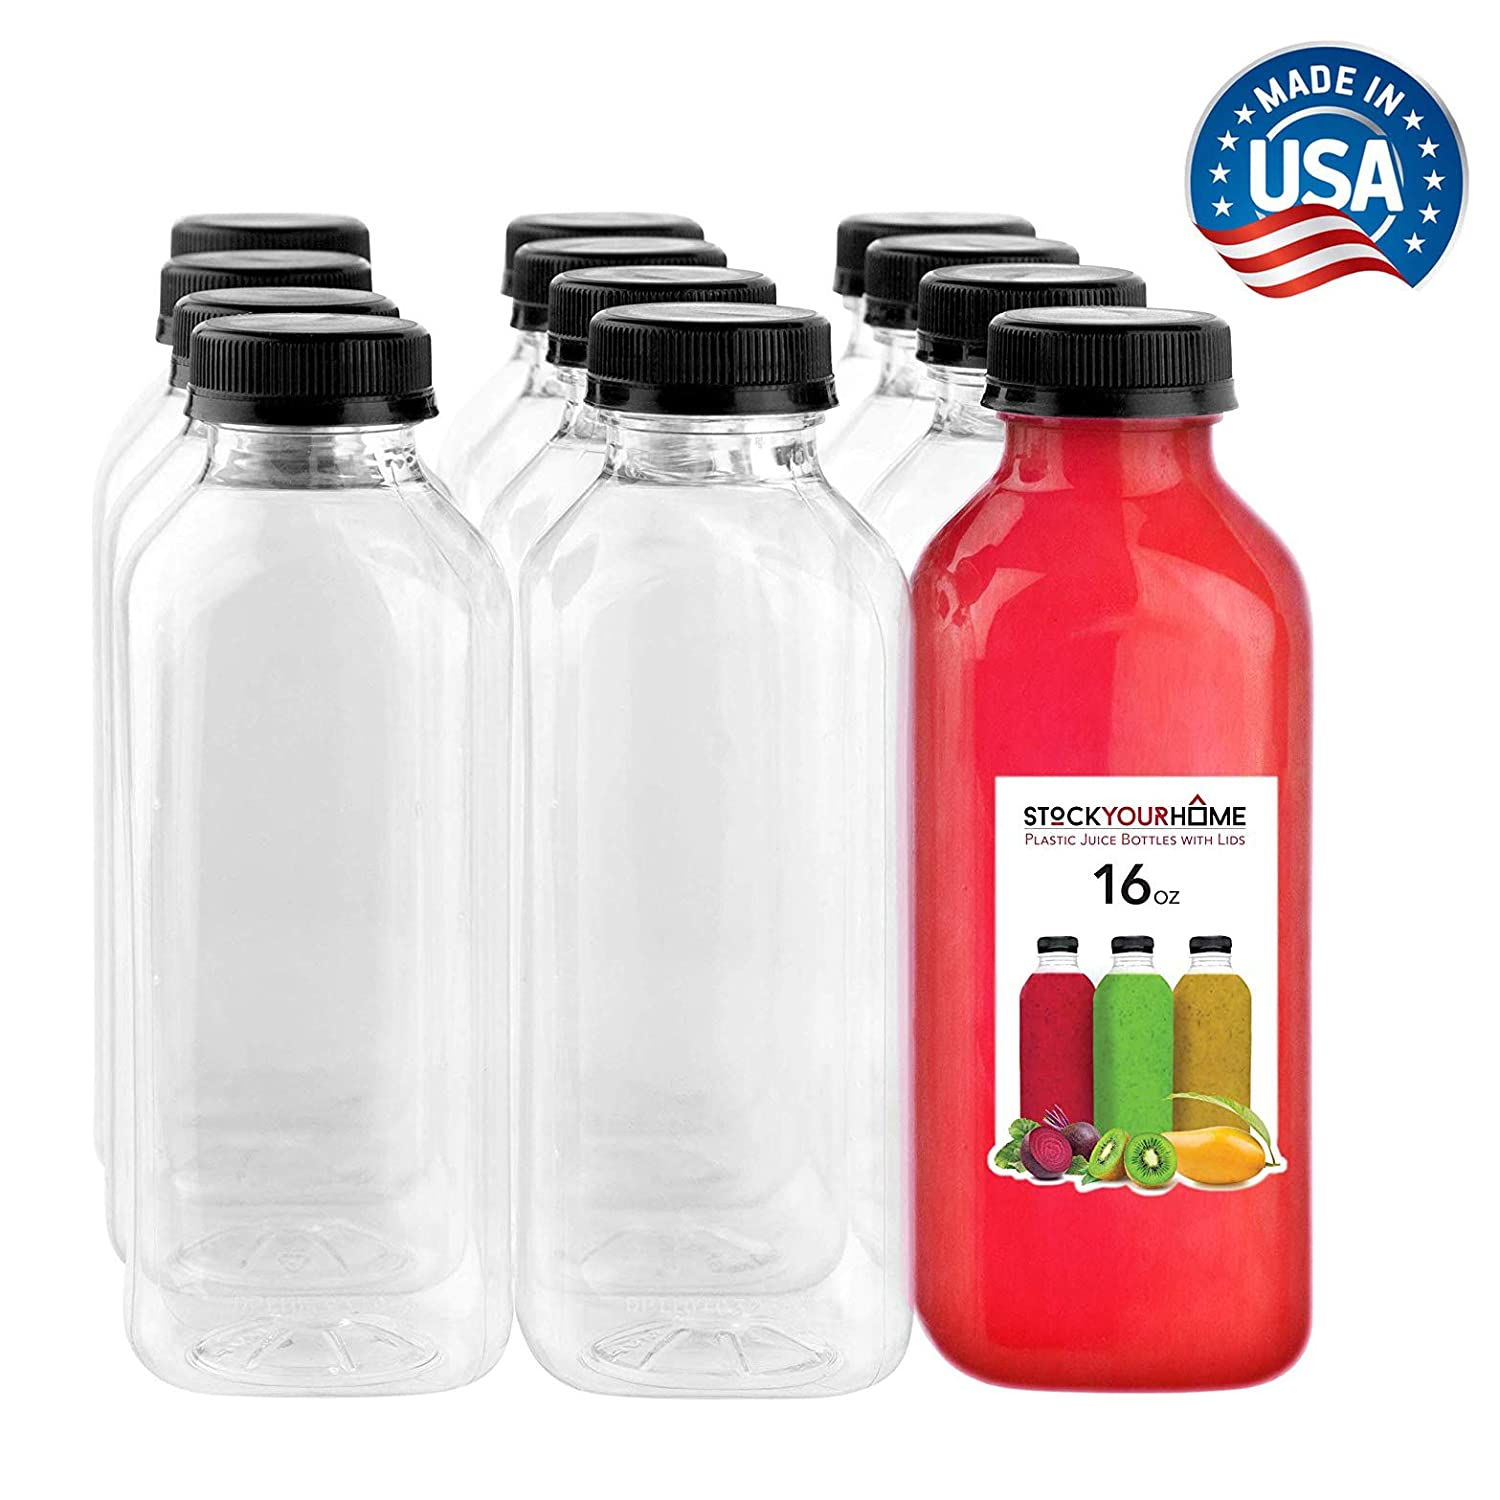 Plastic Juice Bottles with Lids, Juice Drink Containers with Caps for Juicing Smoothie Drinking Cold Beverages, 16 Oz, 12 Count